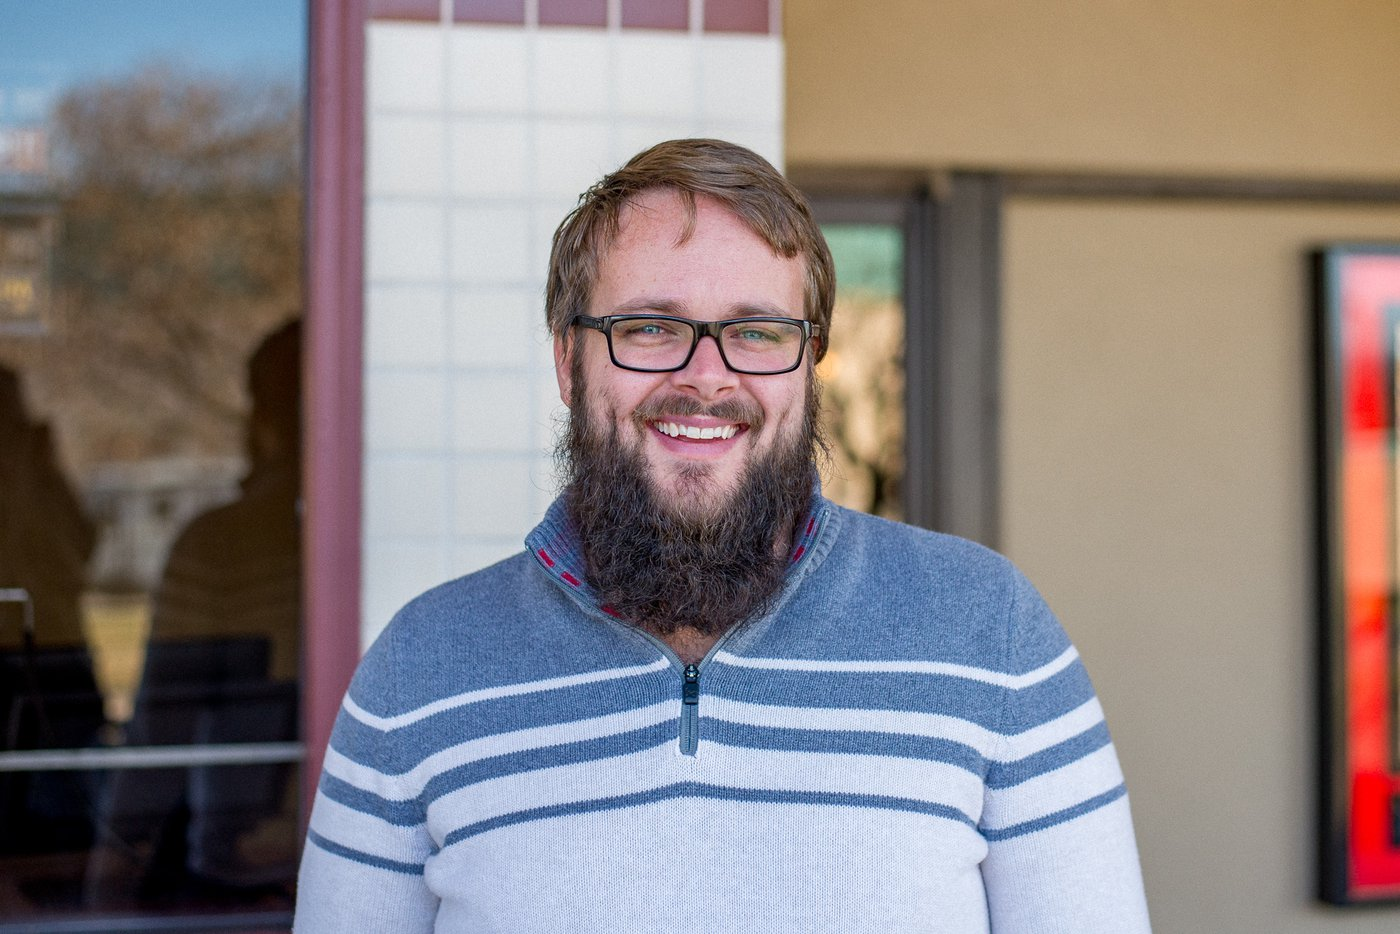 Pastor Adam Woldt - lead pastor at The Point Lutheran Church in Knoxville Tennessee